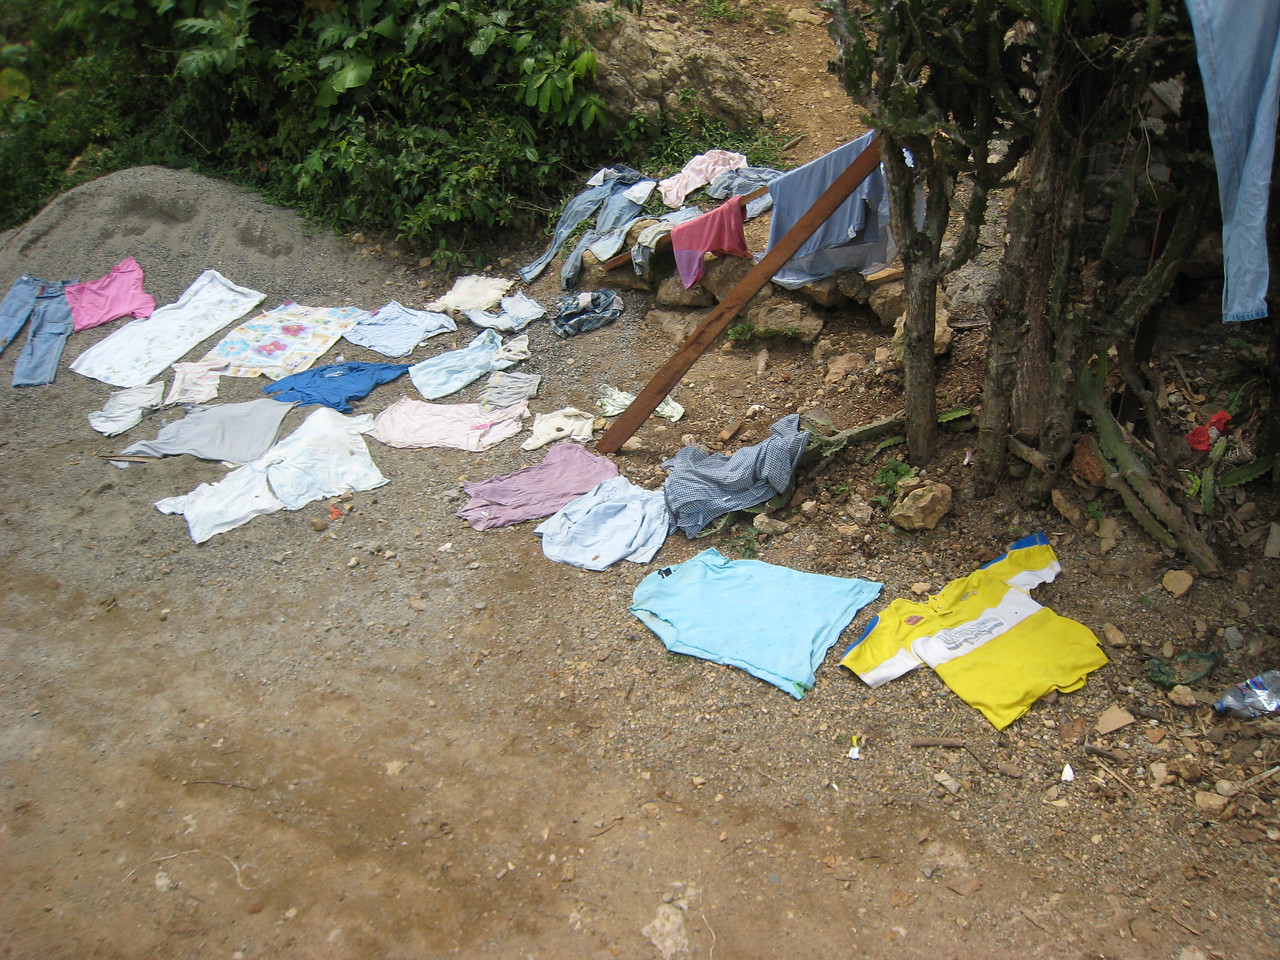 Many people live along the way to get to the castle - and for many people it was laundry day